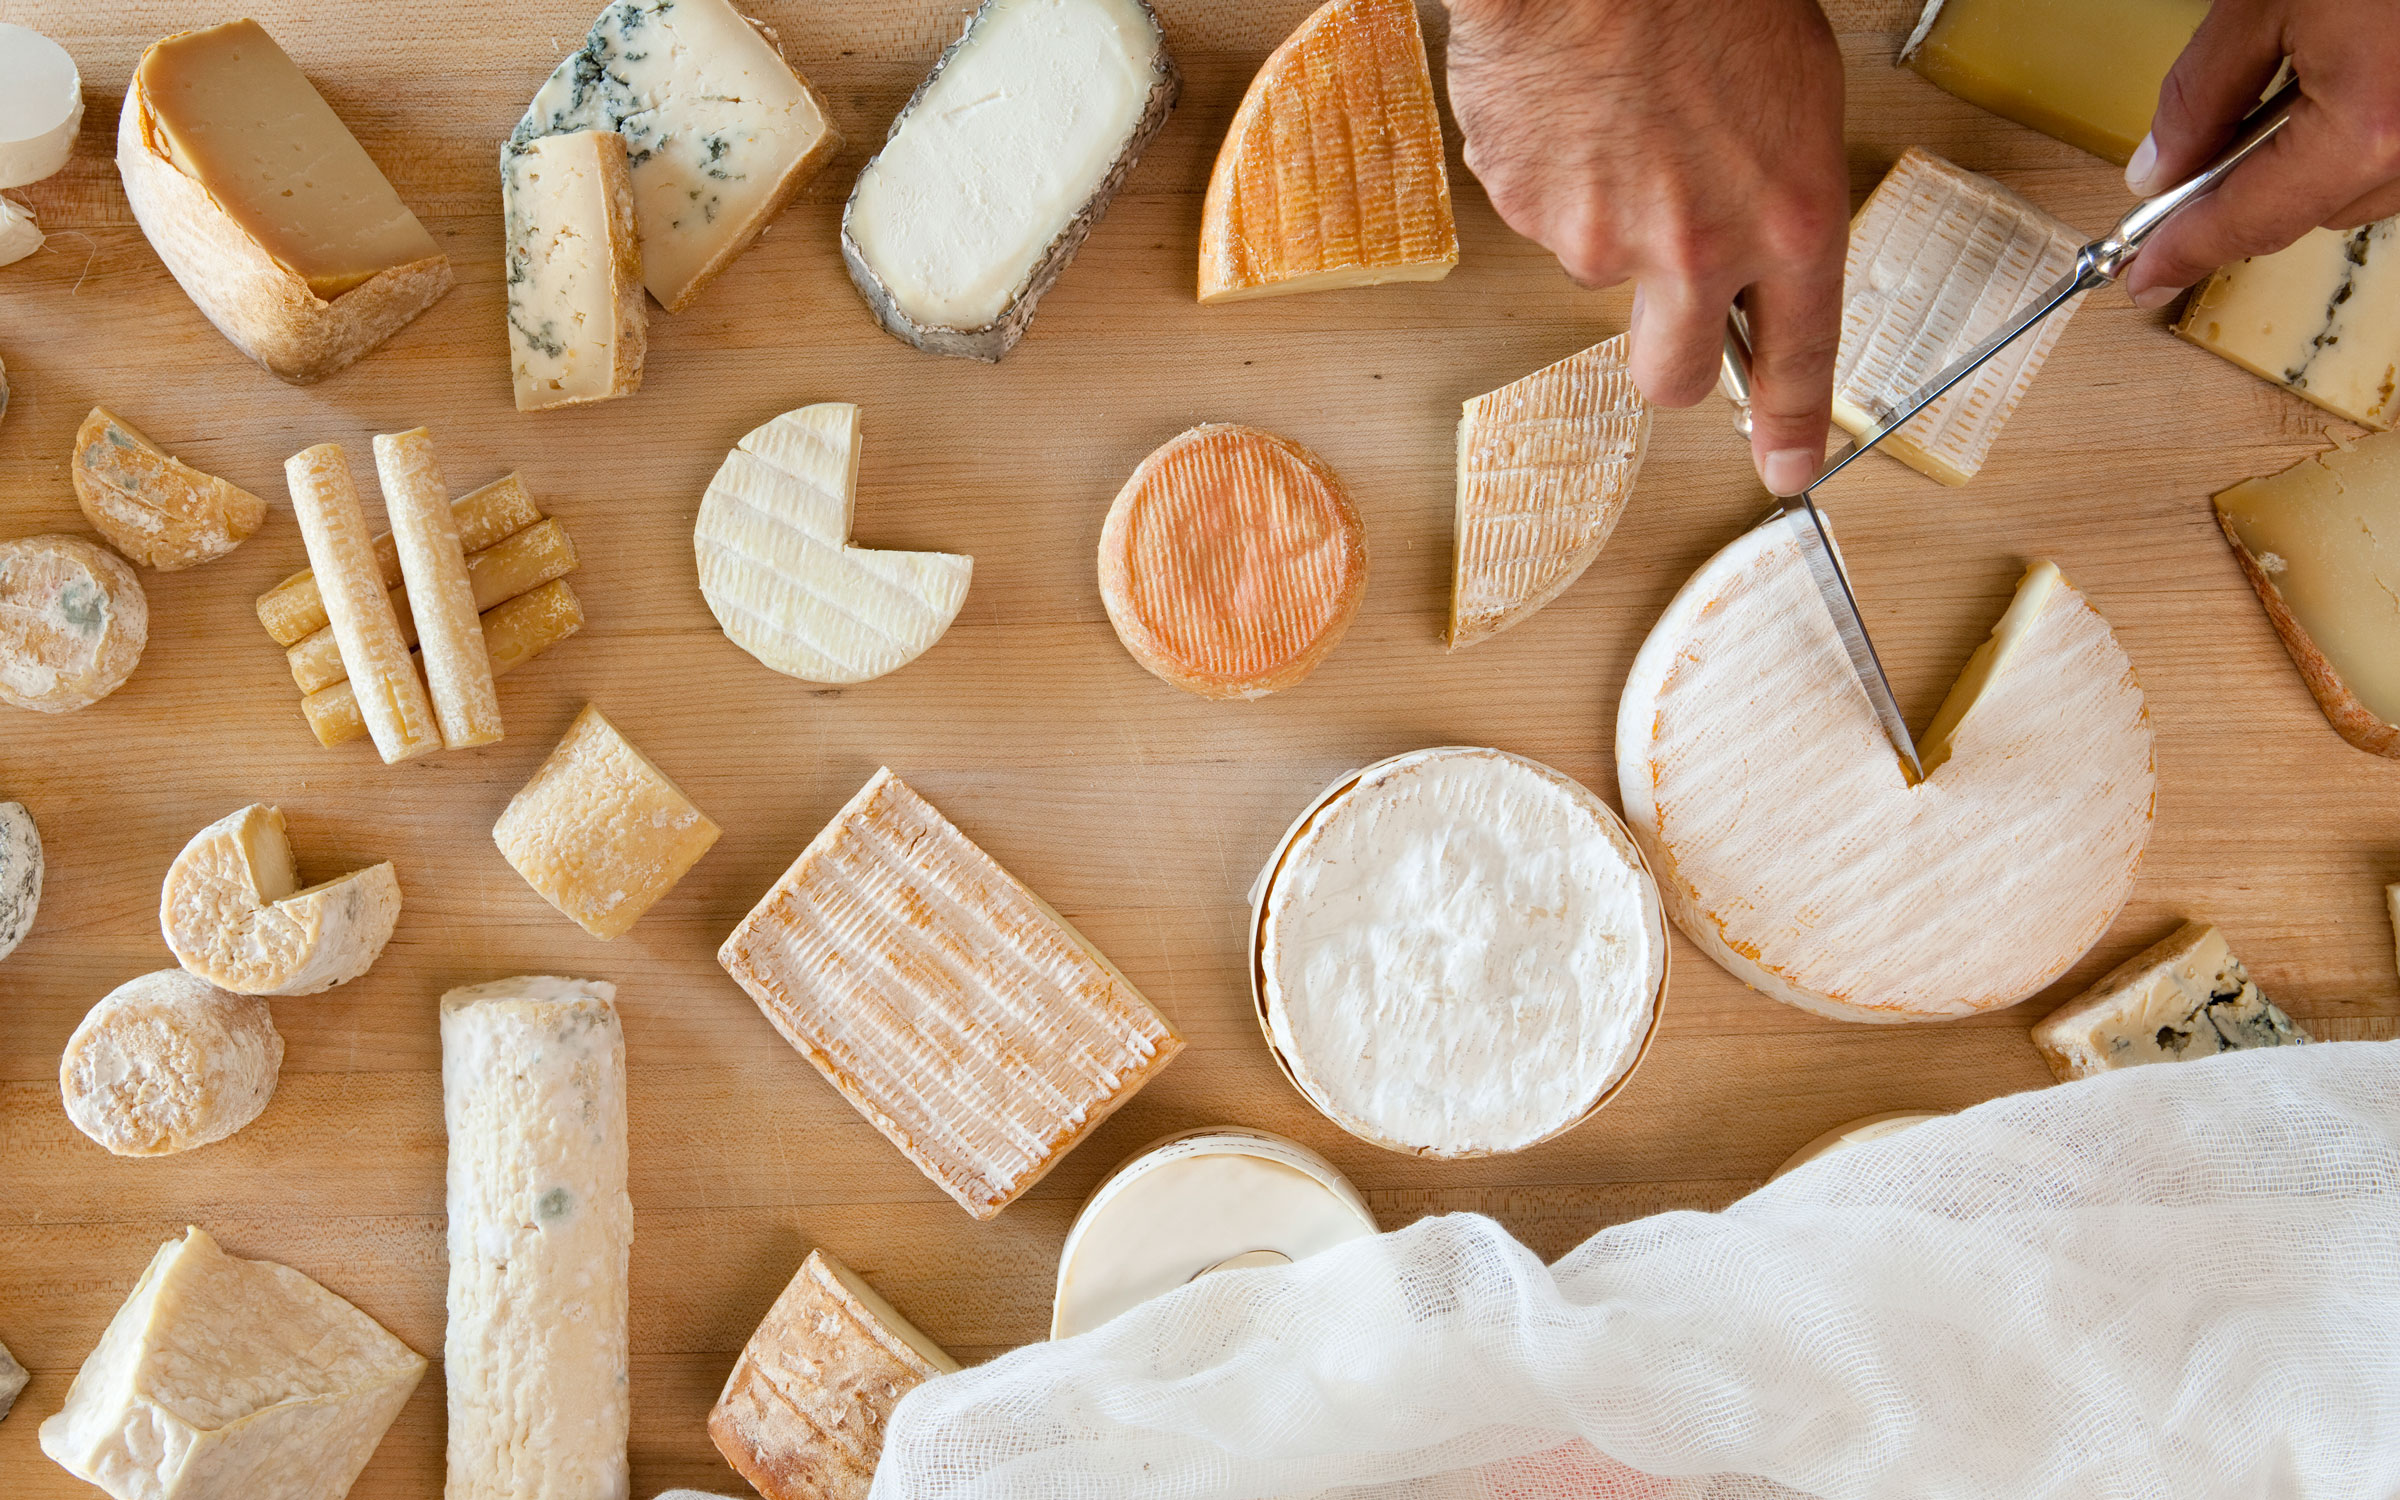 There's Now Proof That Eating Cheese Makes Wine Taste Better